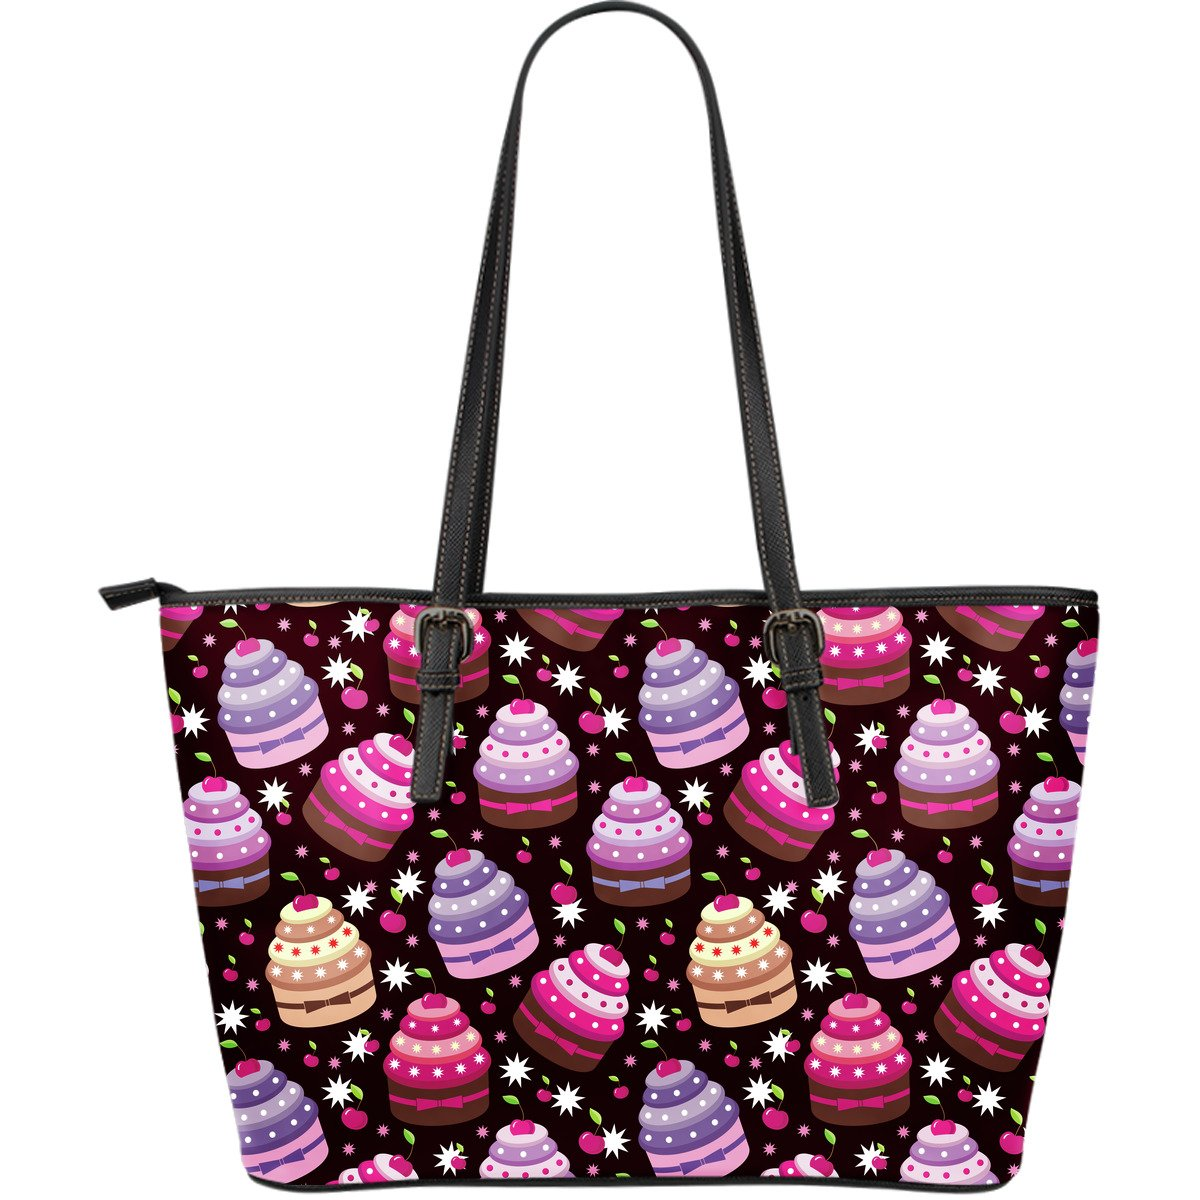 Cupcake Print Large Leather Tote Bag